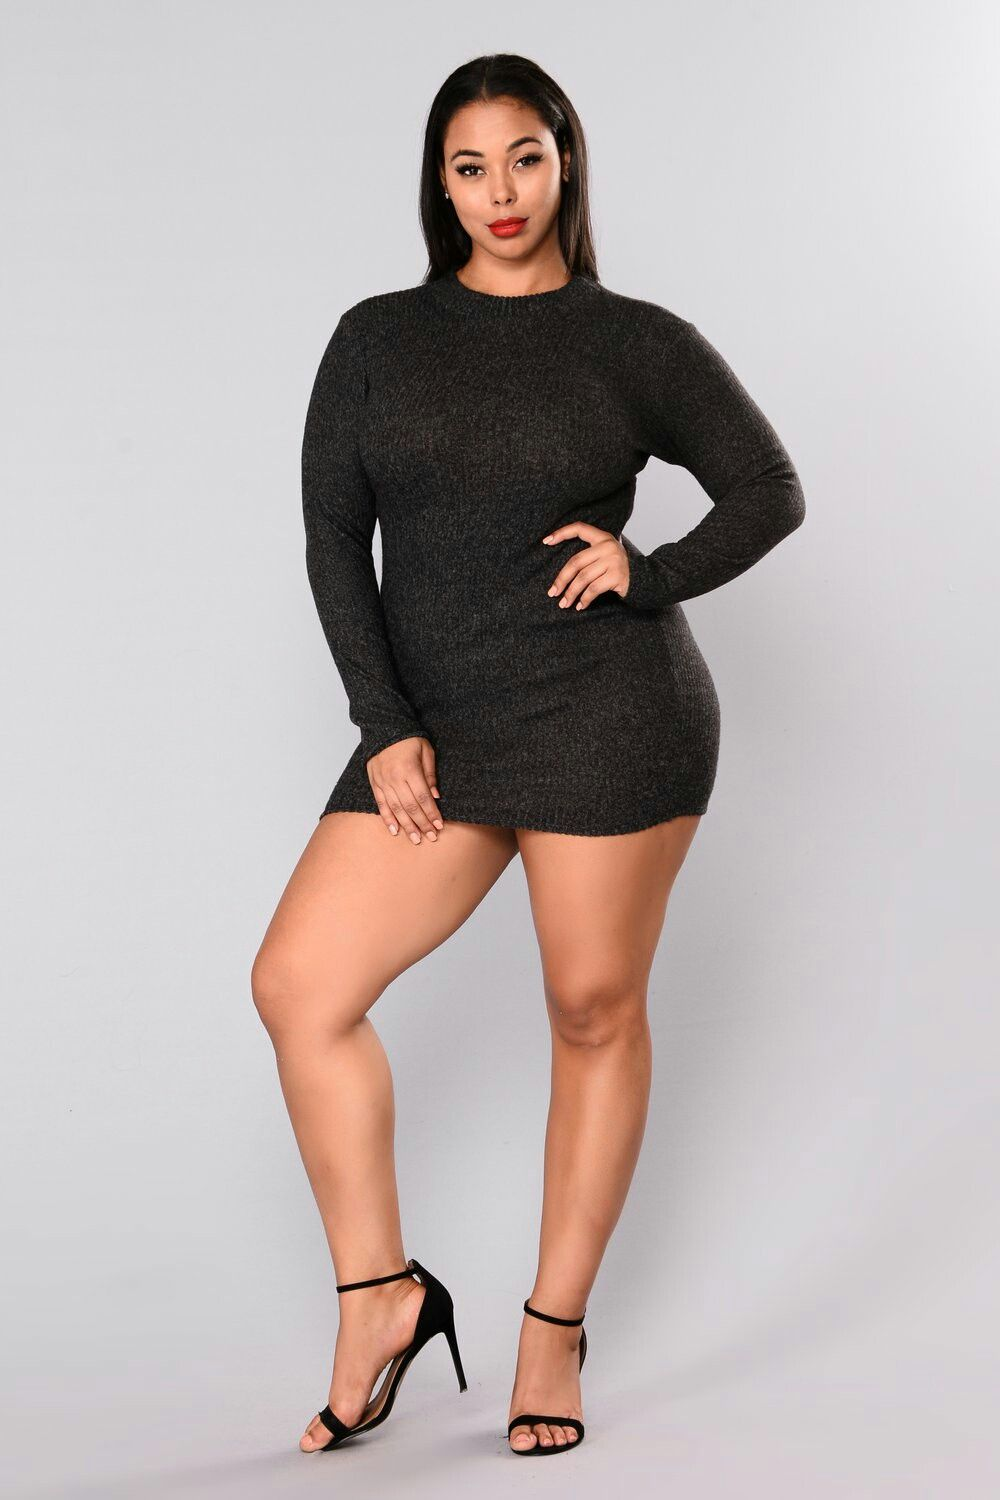 892d3e8943 The fashion industry all over world has realized that increasing numbers of  customers fall under the category of plus size. By not dealing in plus size  clo